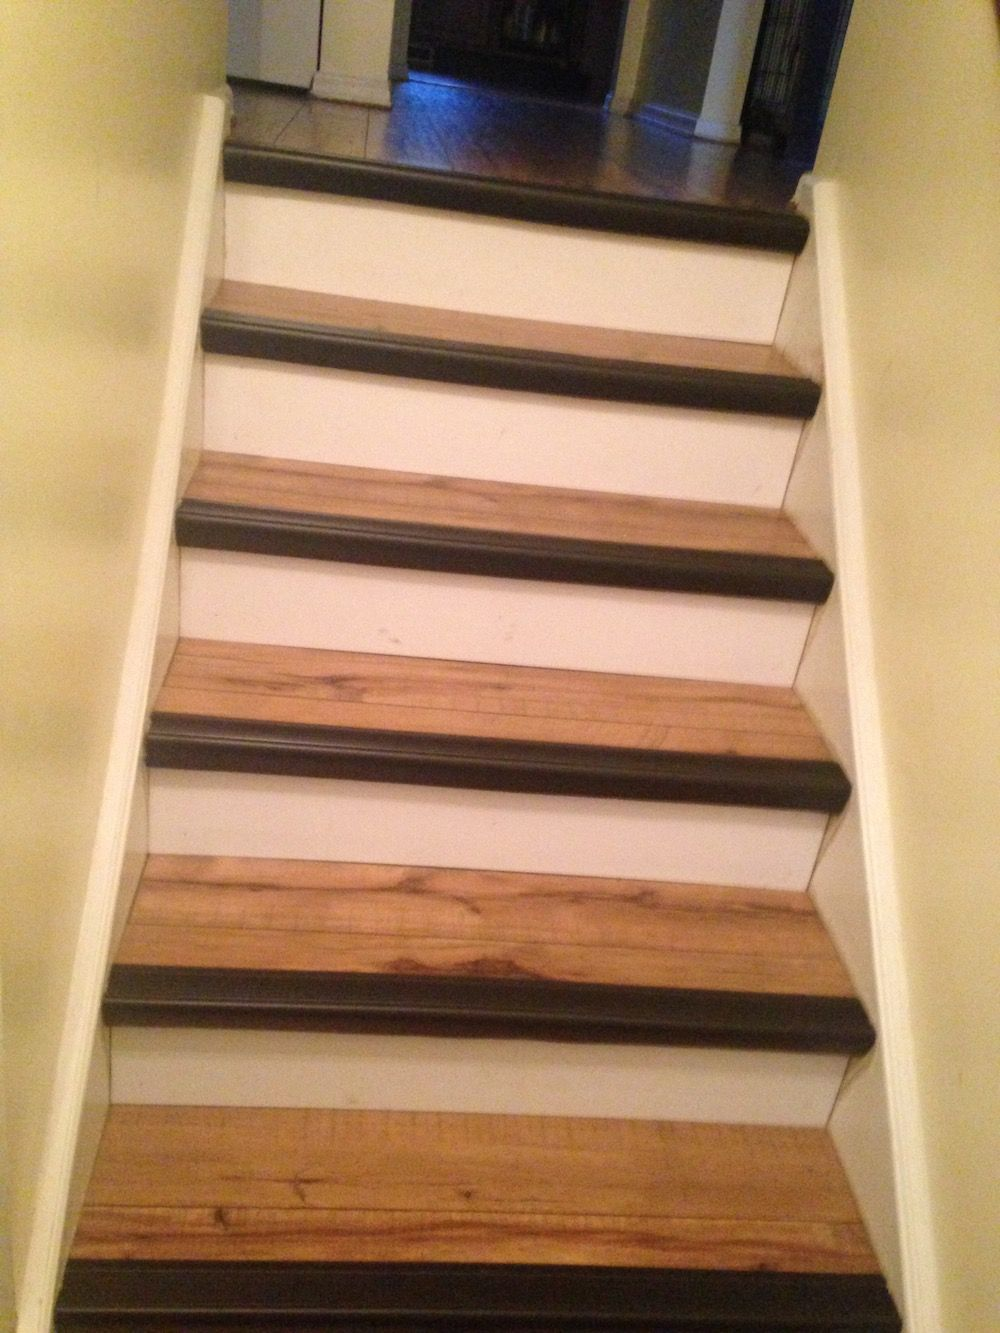 Contrast Stair Nosing Makes Steps Safer And Looks Stylish Which